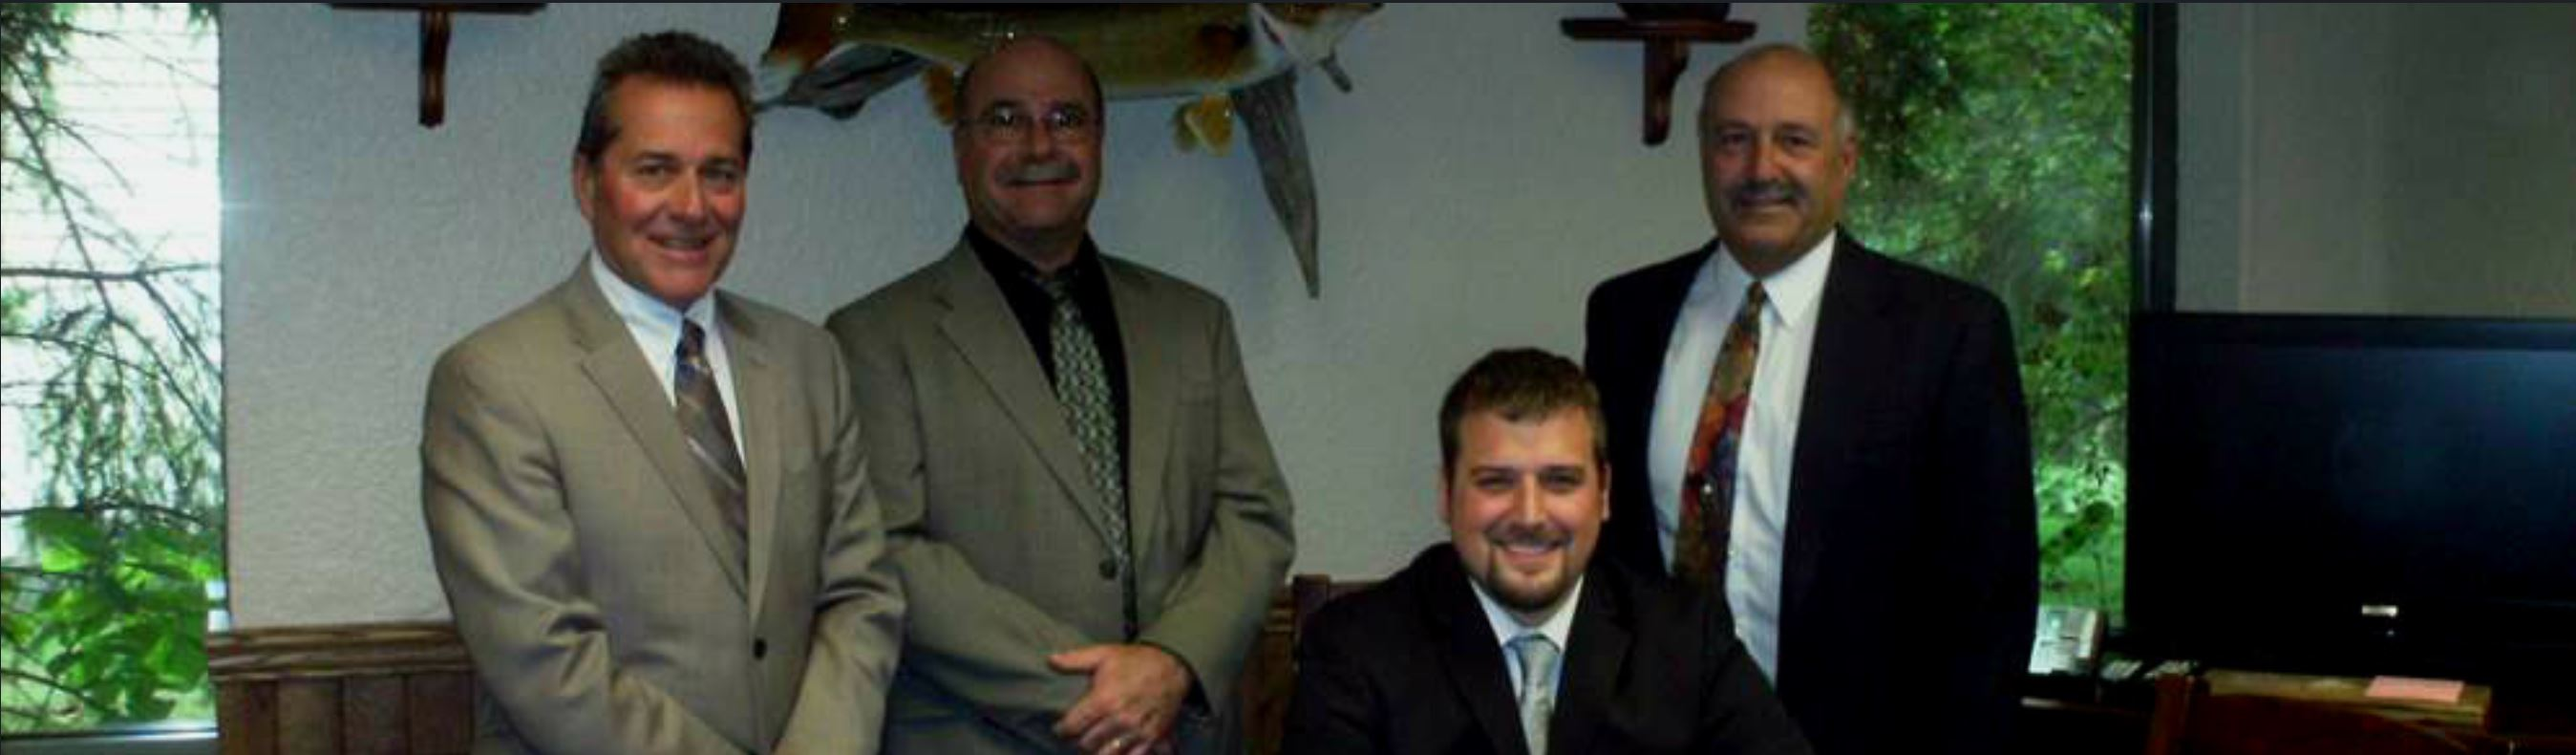 Photo of Four Attorneys at Cirilli Law Offices, S.C.